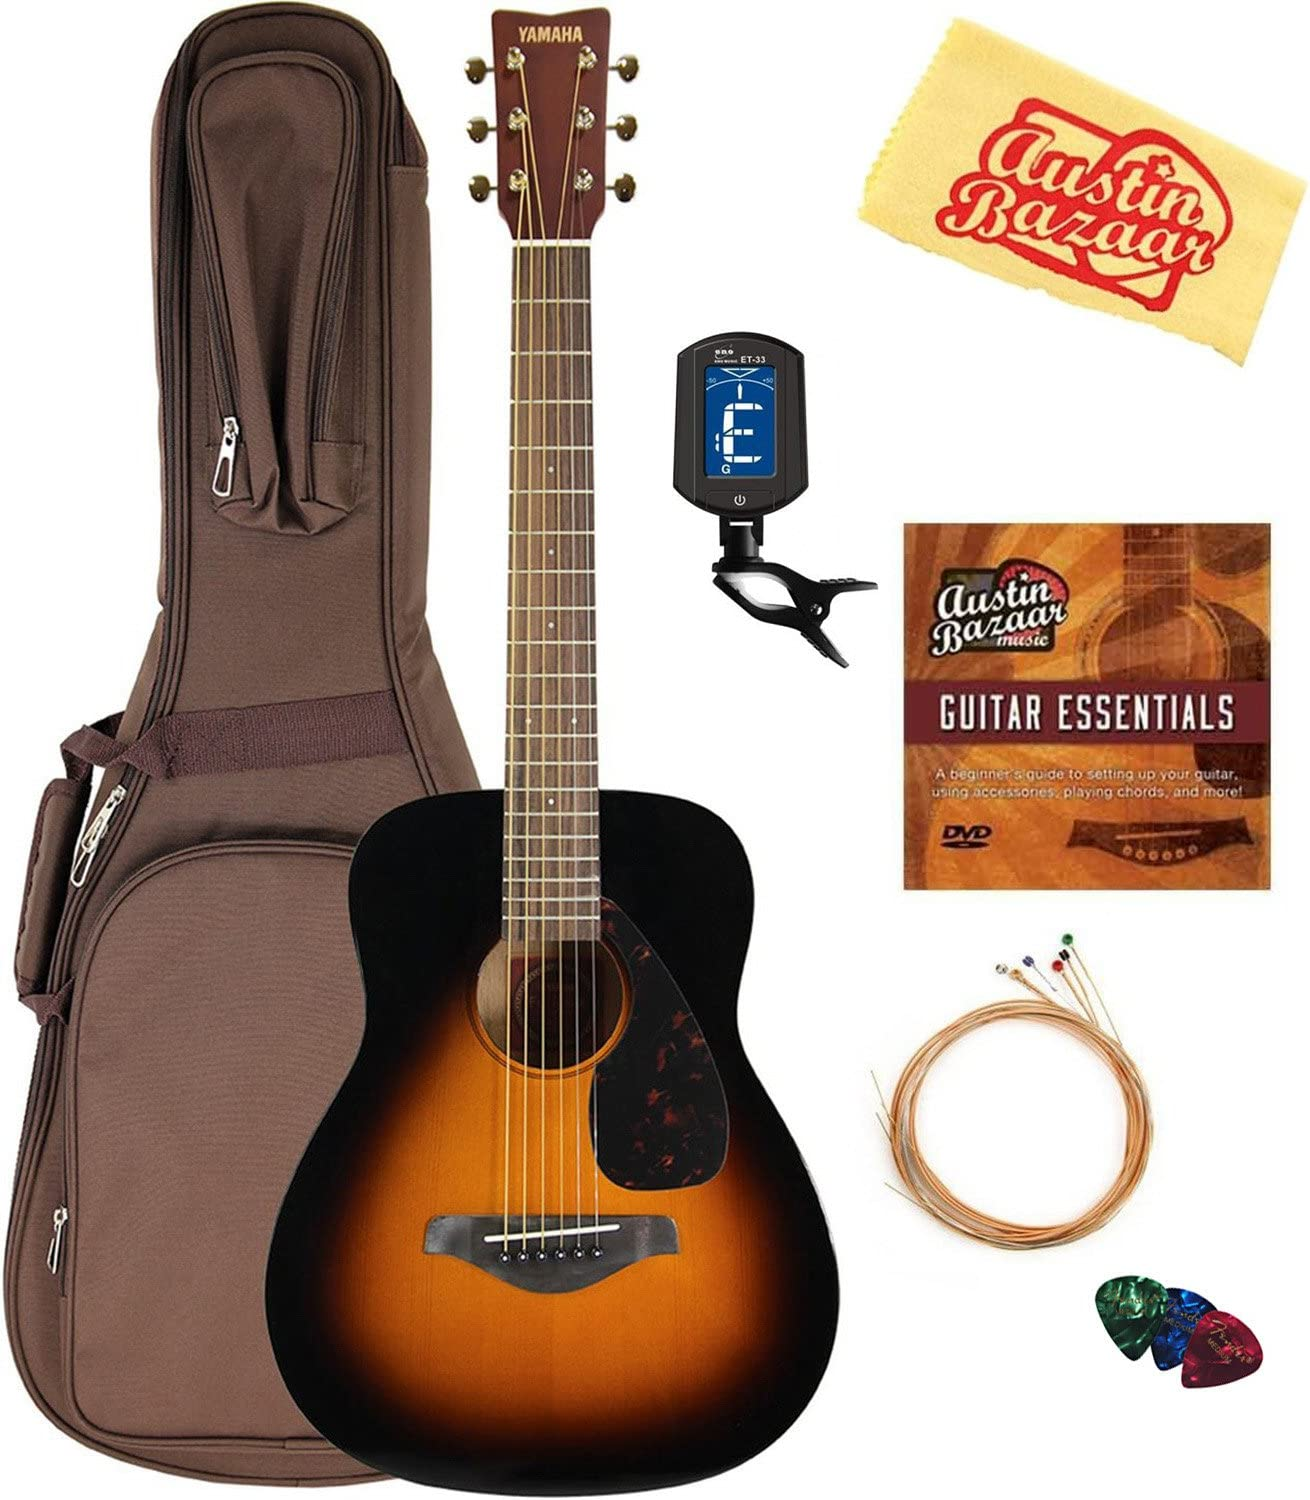 Yamaha JR2 Junior-Size 33-Inch Acoustic Guitar - Tobacco Sunburst Bundle with Gig Bag, Tuner, Strings, String Winder, Picks, Austin Bazaar Instructional DVD, and Polishing Cloth